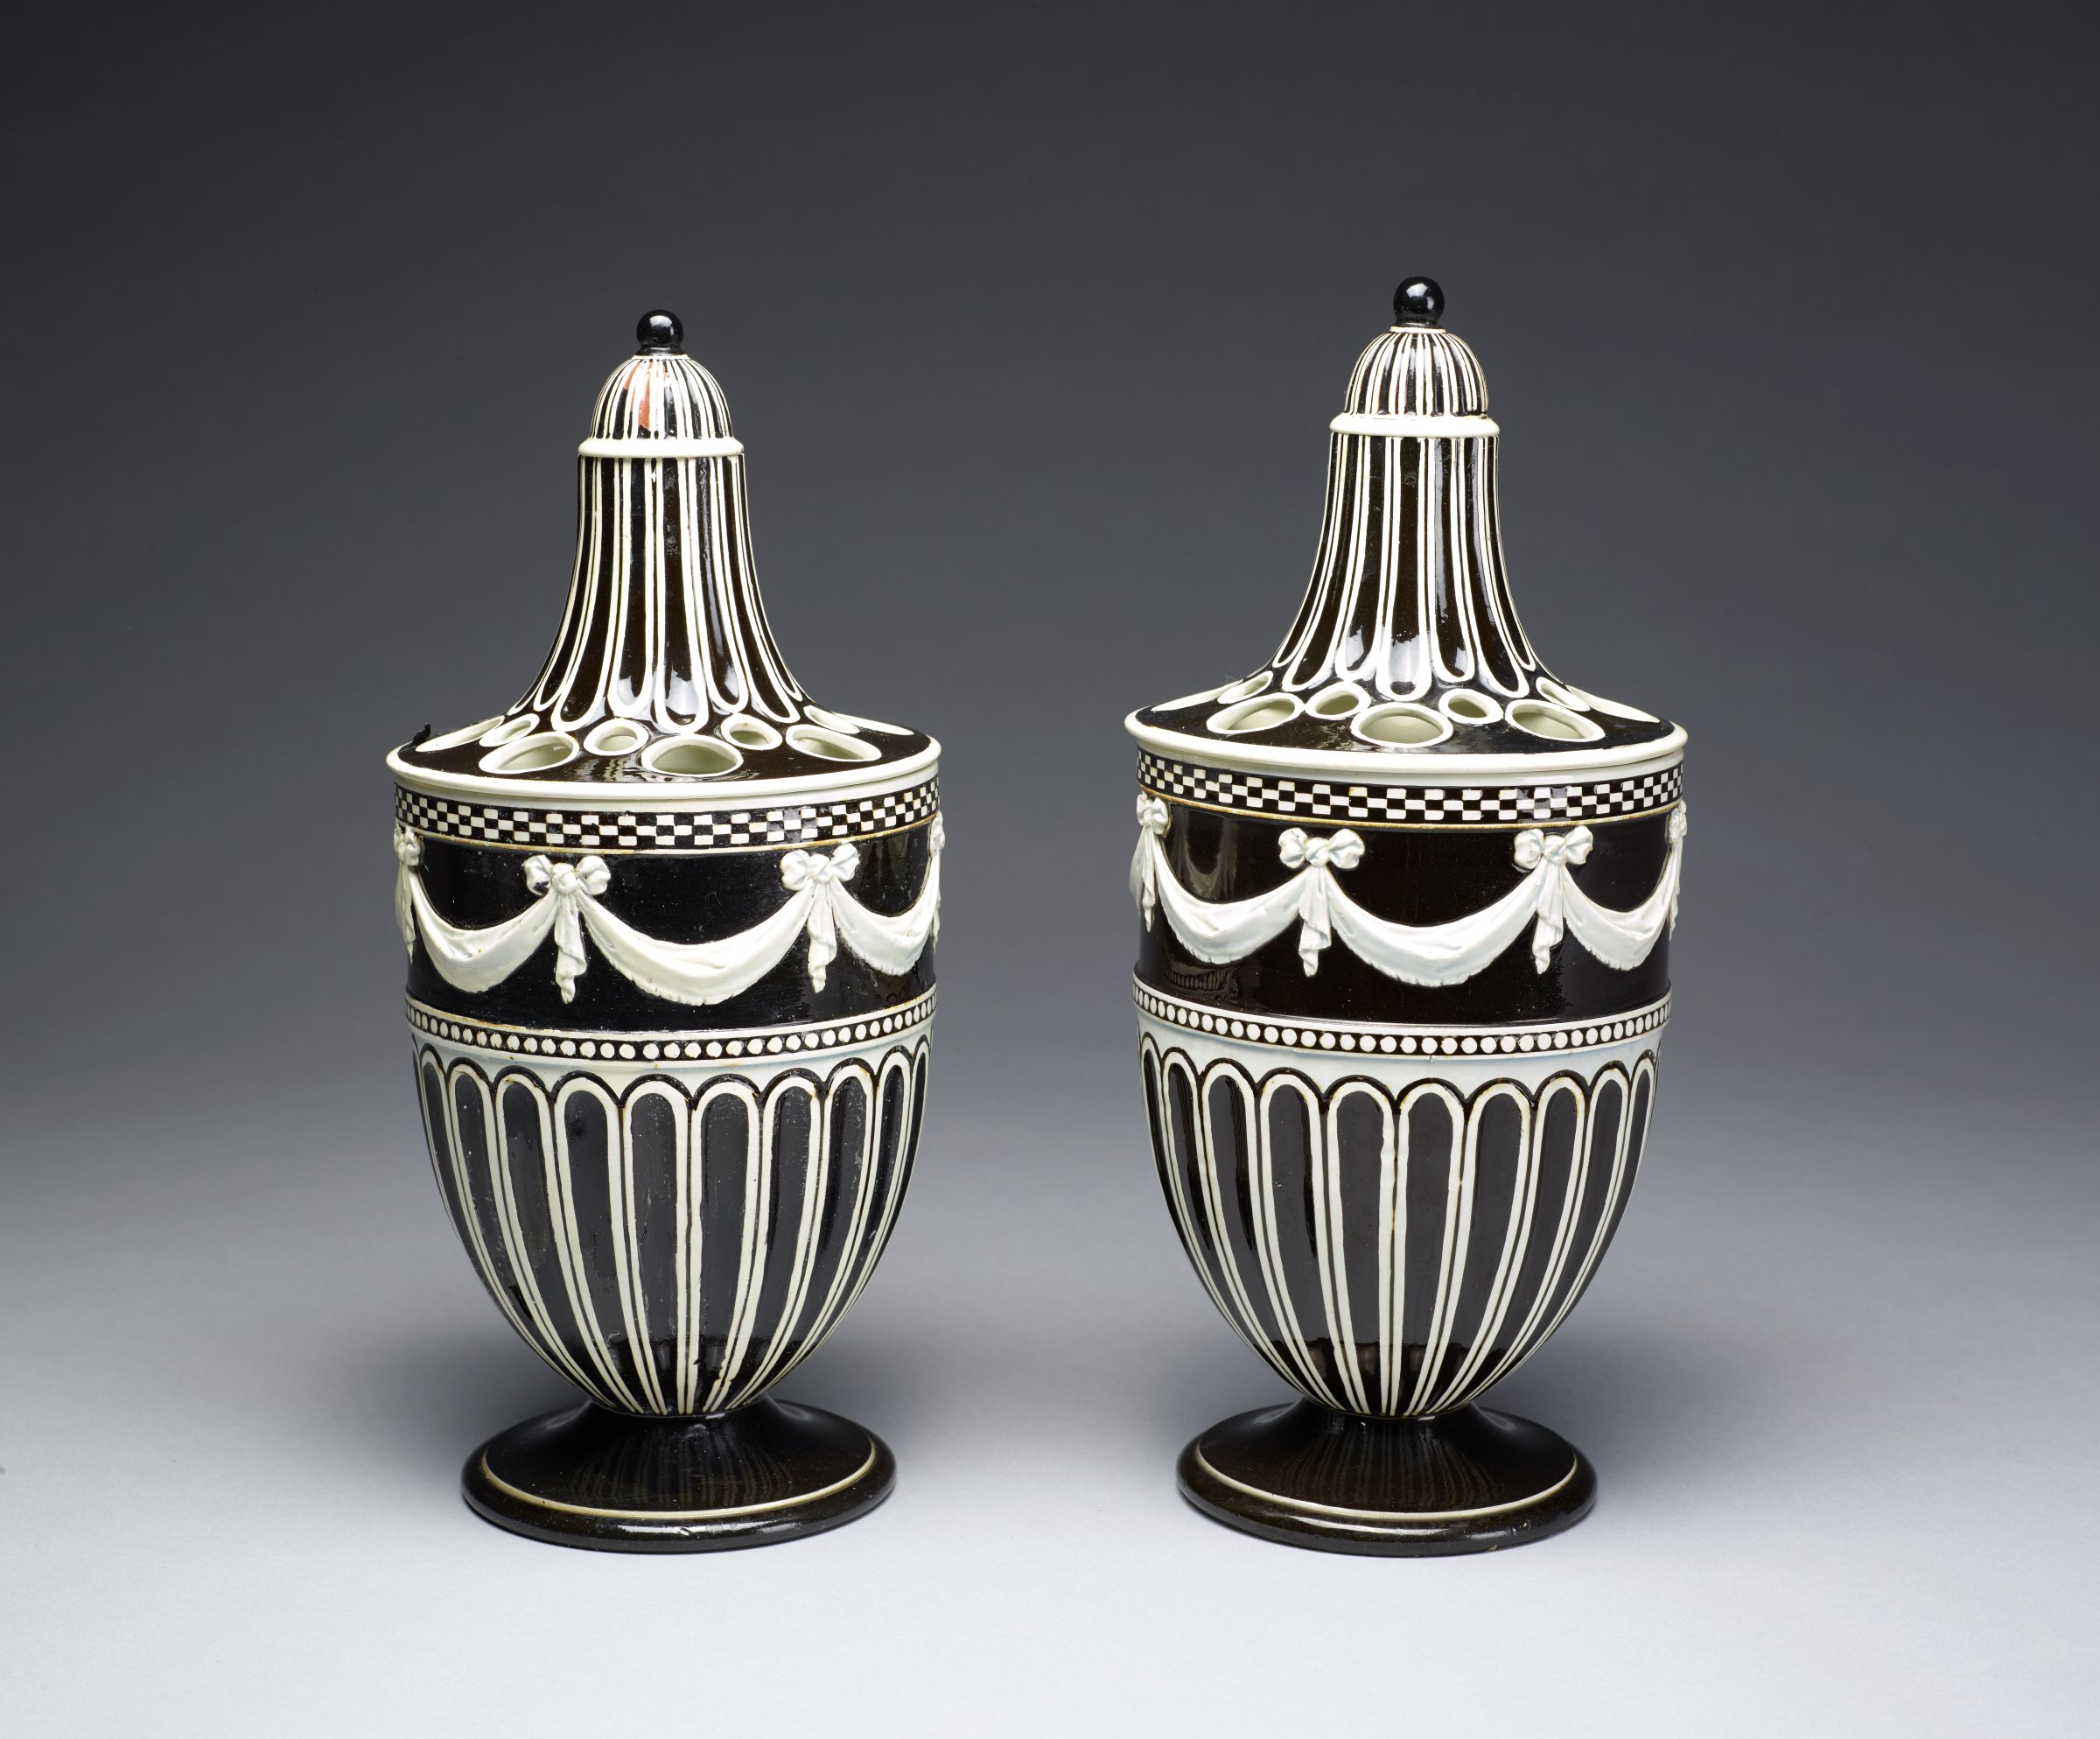 Pair of urn-shaped potpourri vases on round foot, of white stoneware covered with a black glaze under a clear pearl glaze, the lower bodies with gadrooning below a band of beading, with a band of white swags held by ribbons below a checkerboard pattern at the shoulder, the covers with a series of large and small holes and an elongated neck that has similar gadrooning, the domed cover with ball finial.